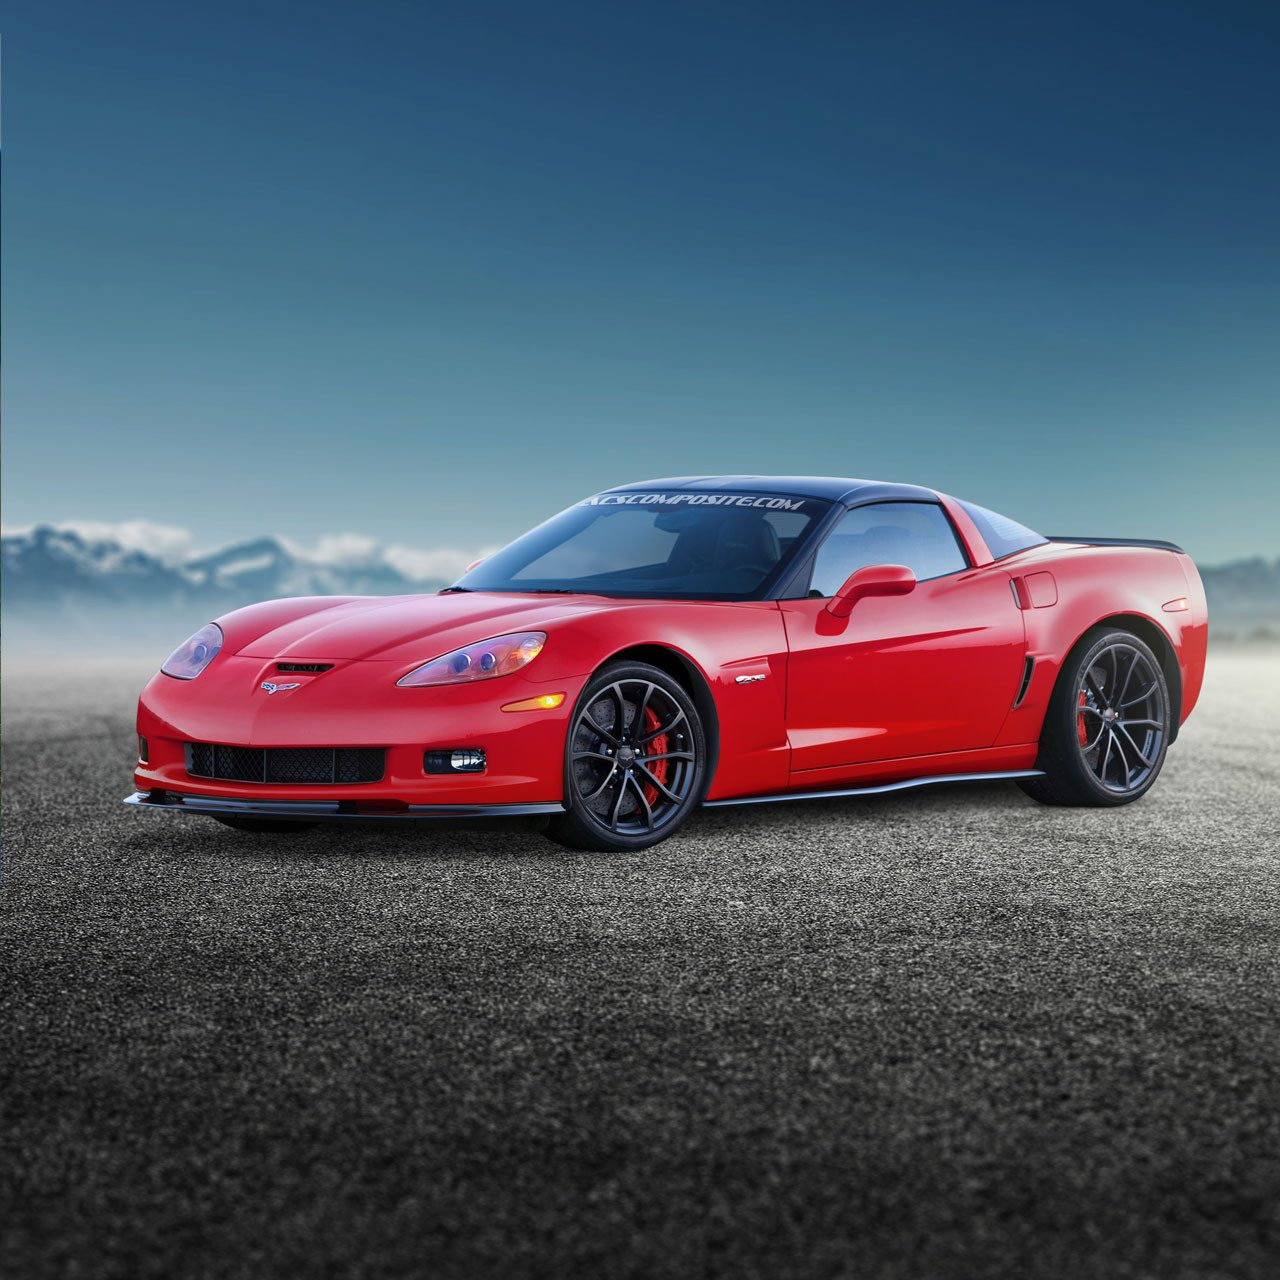 2005 c6 corvette image gallery pictures